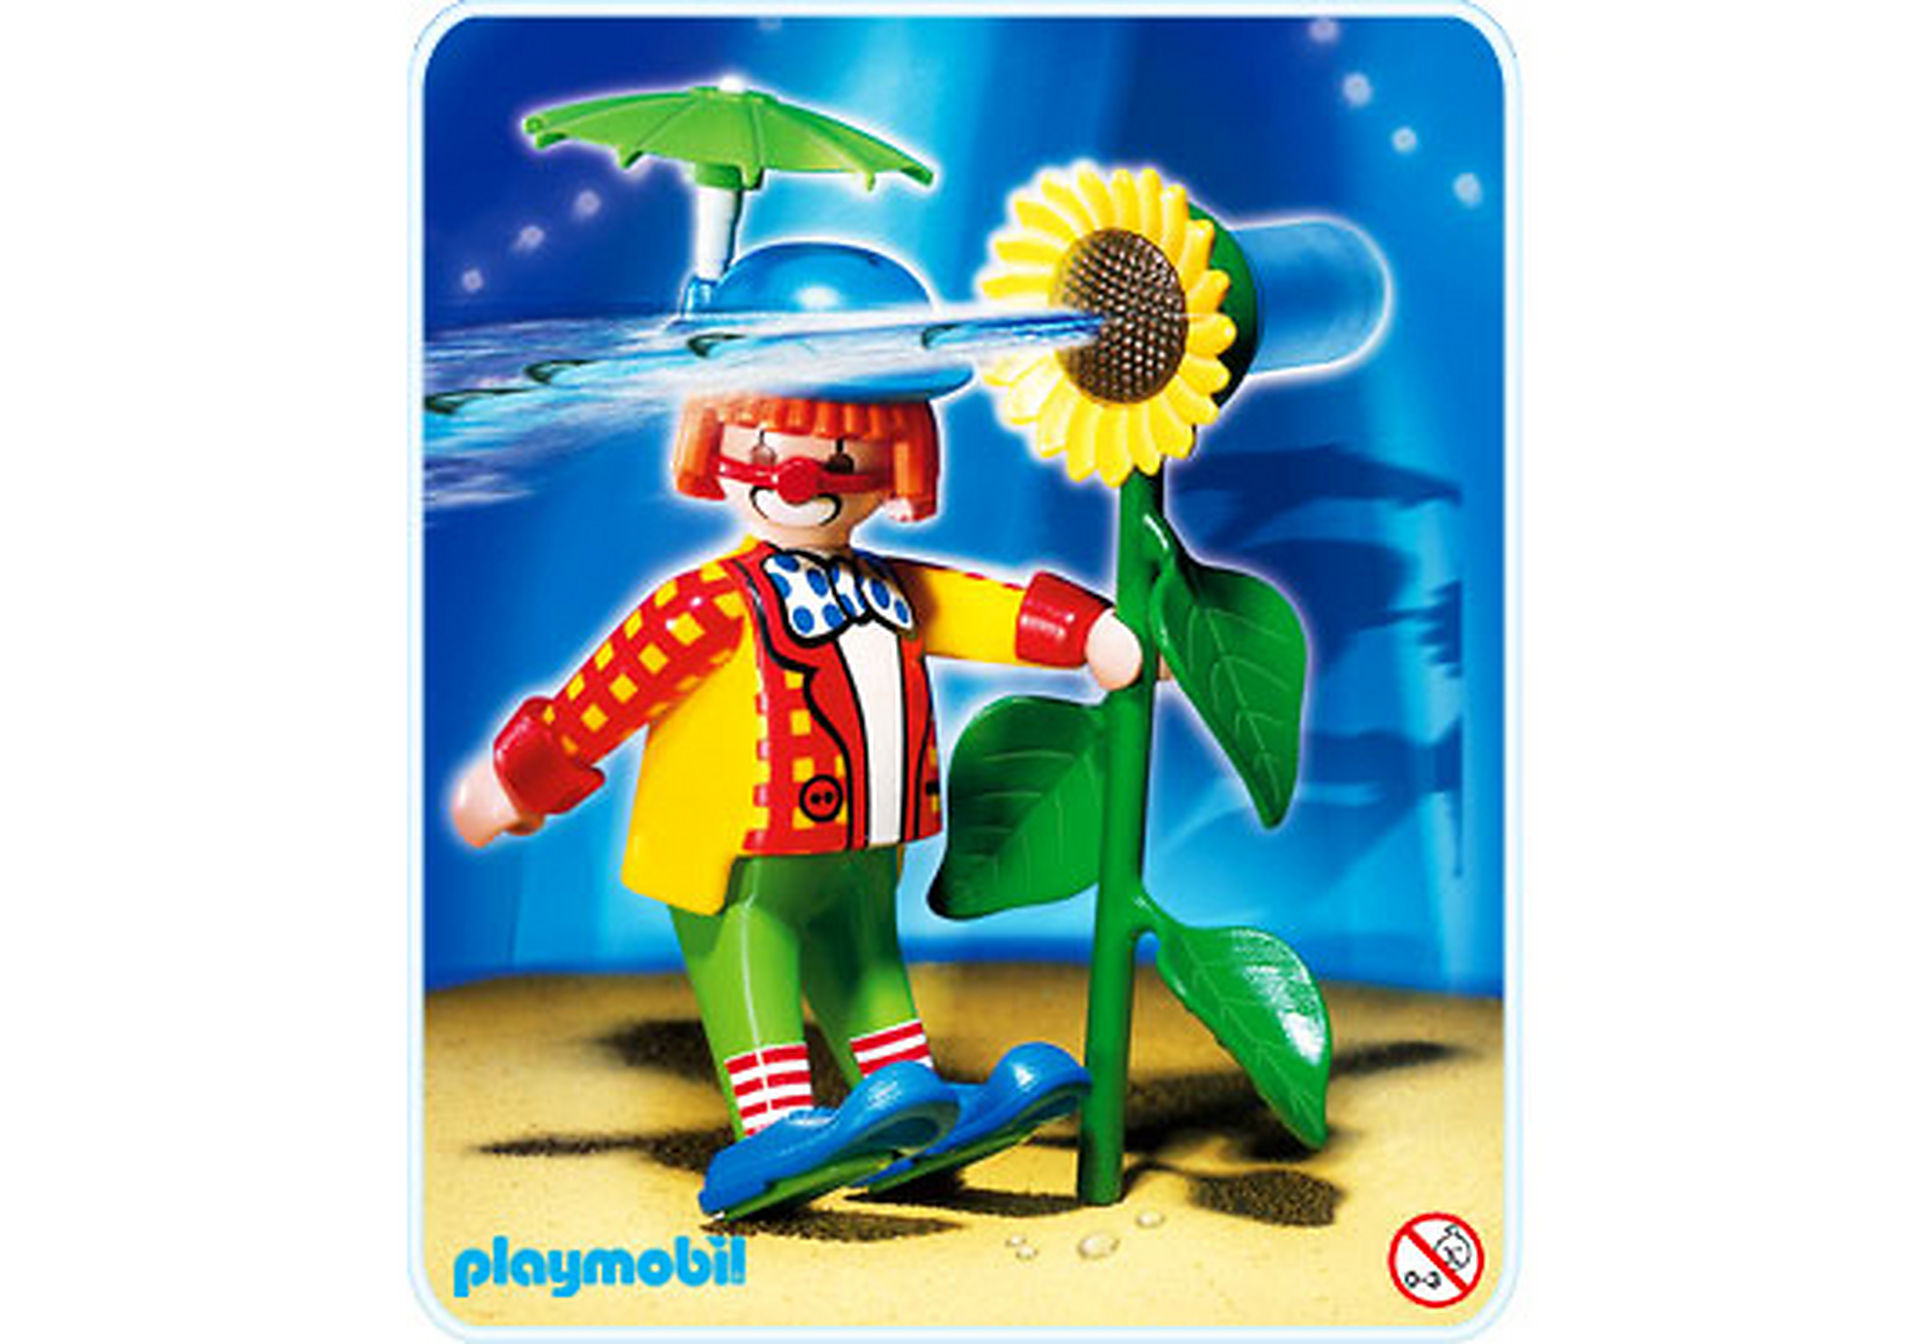 http://media.playmobil.com/i/playmobil/4238-A_product_detail/Clown mit Spritzblume